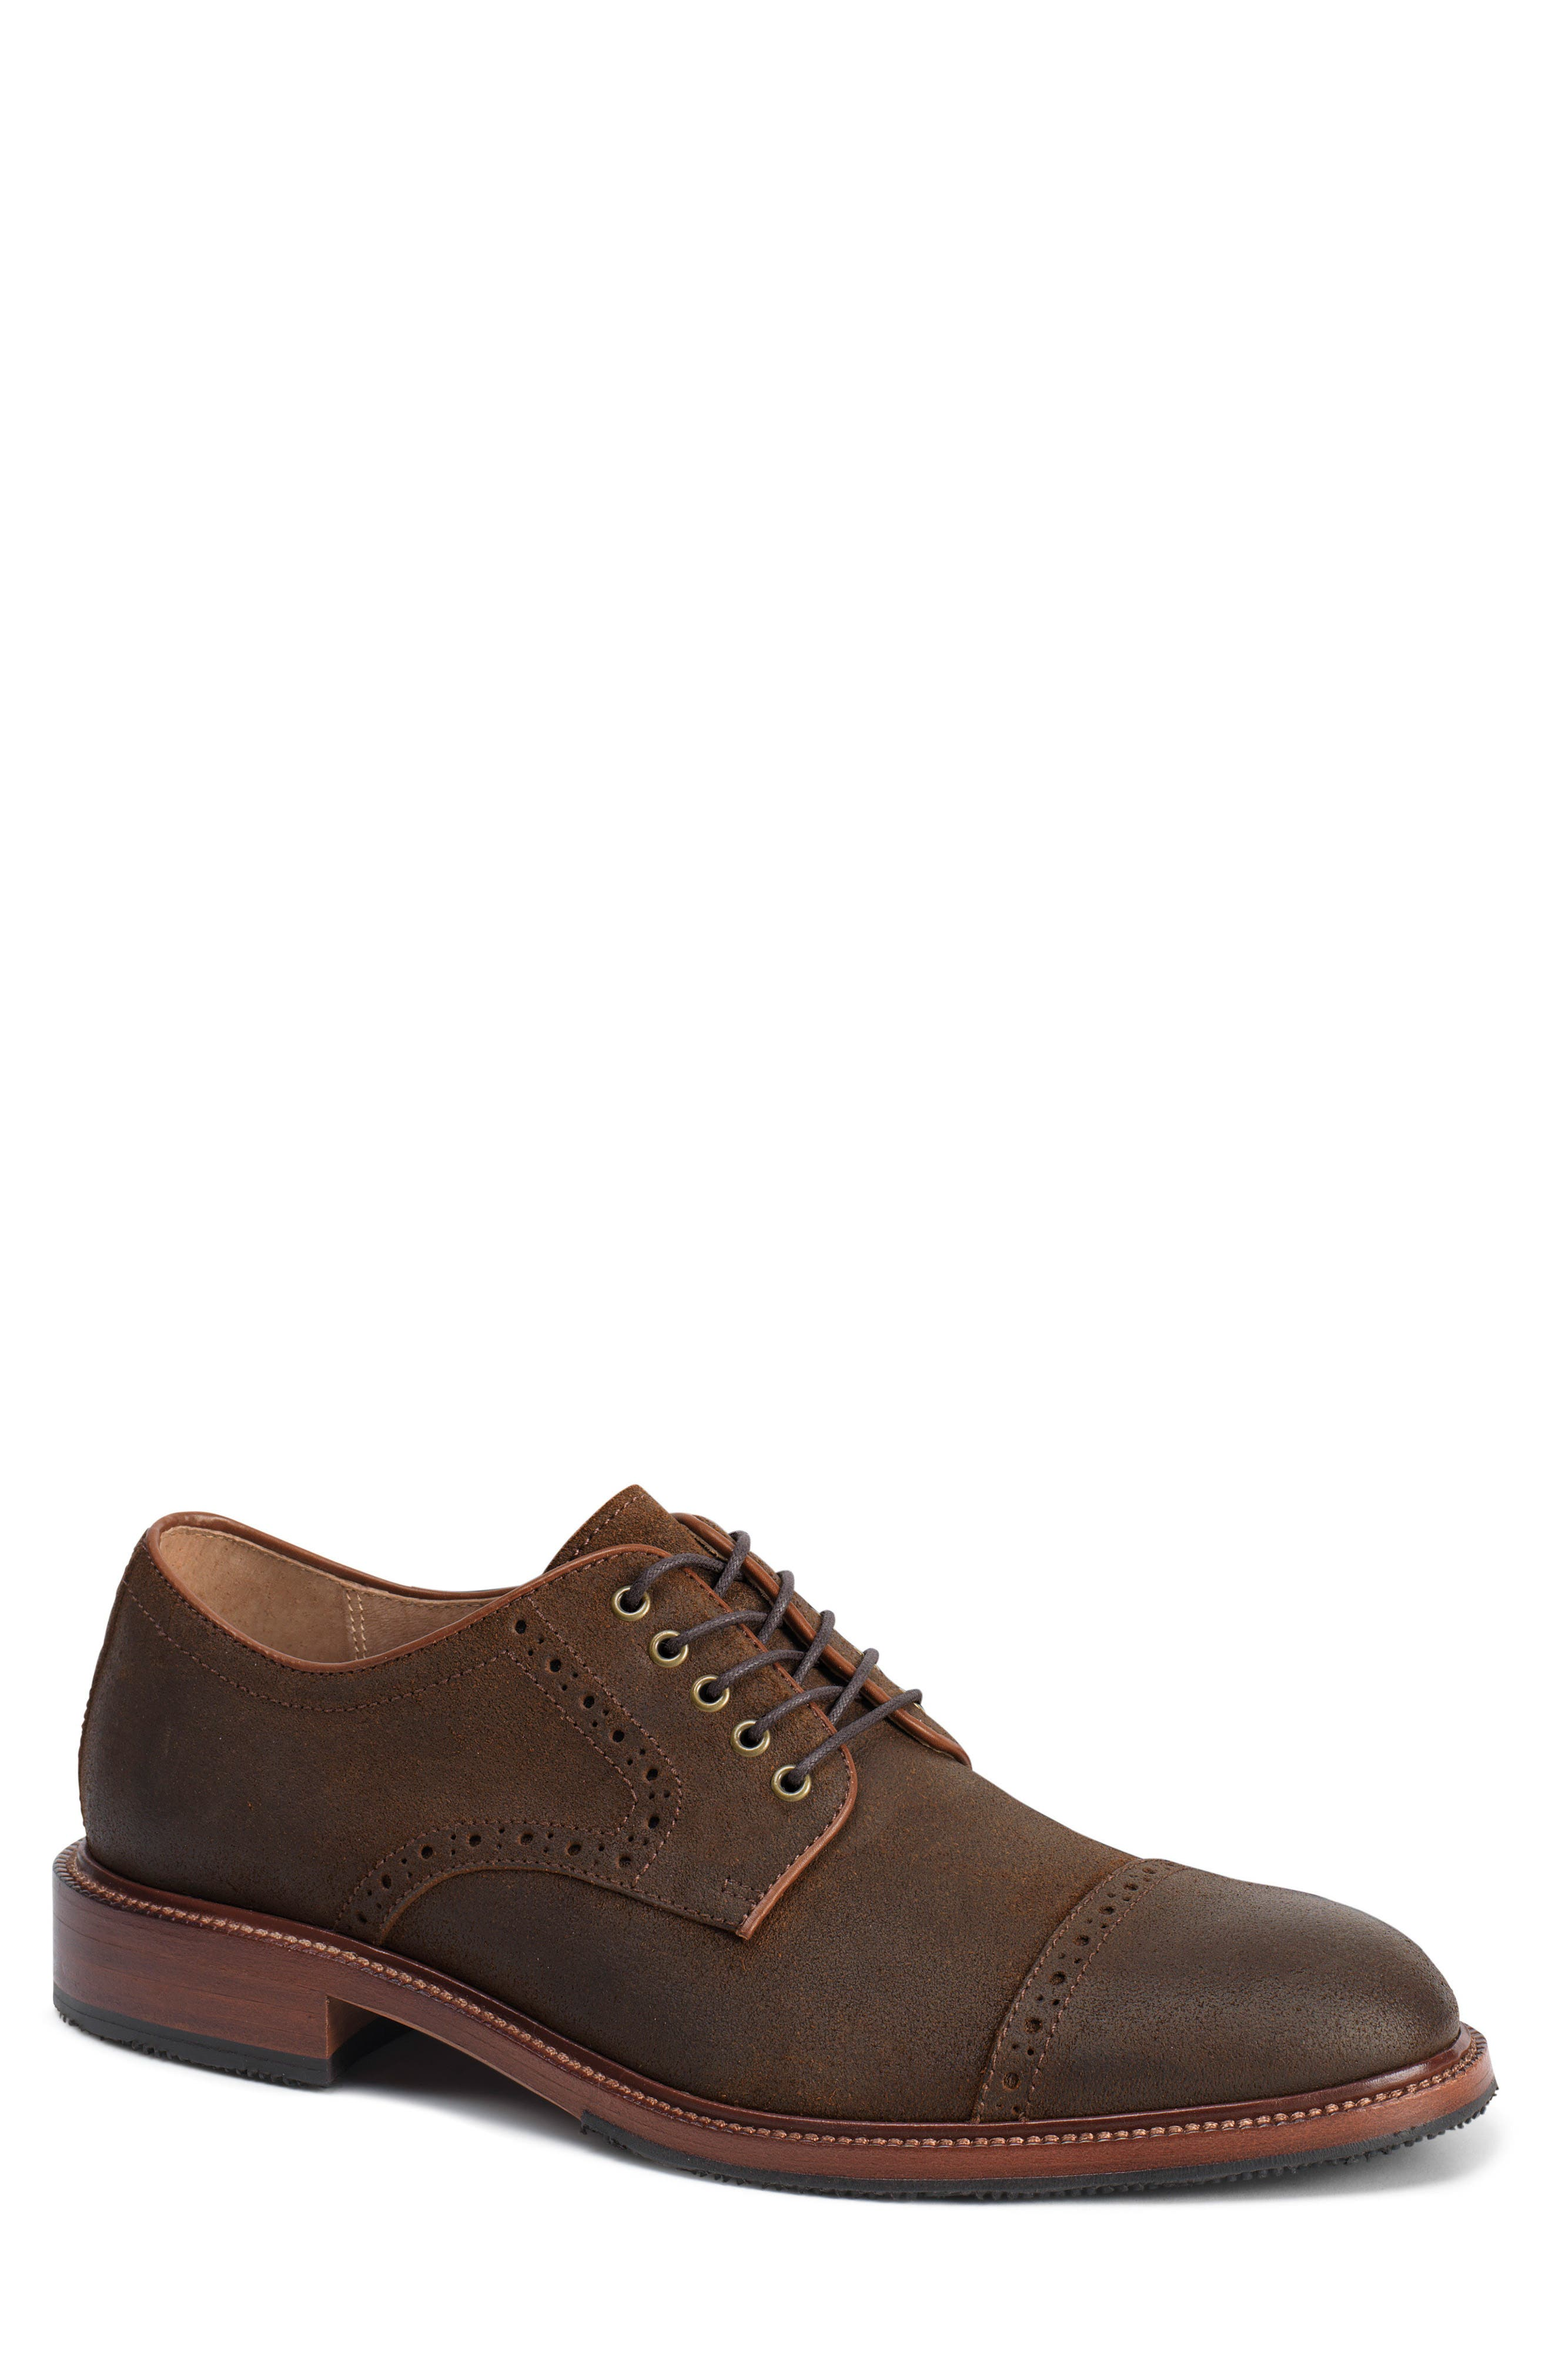 Linwood Cap Toe Derby,                             Main thumbnail 1, color,                             Brown Waxed Suede